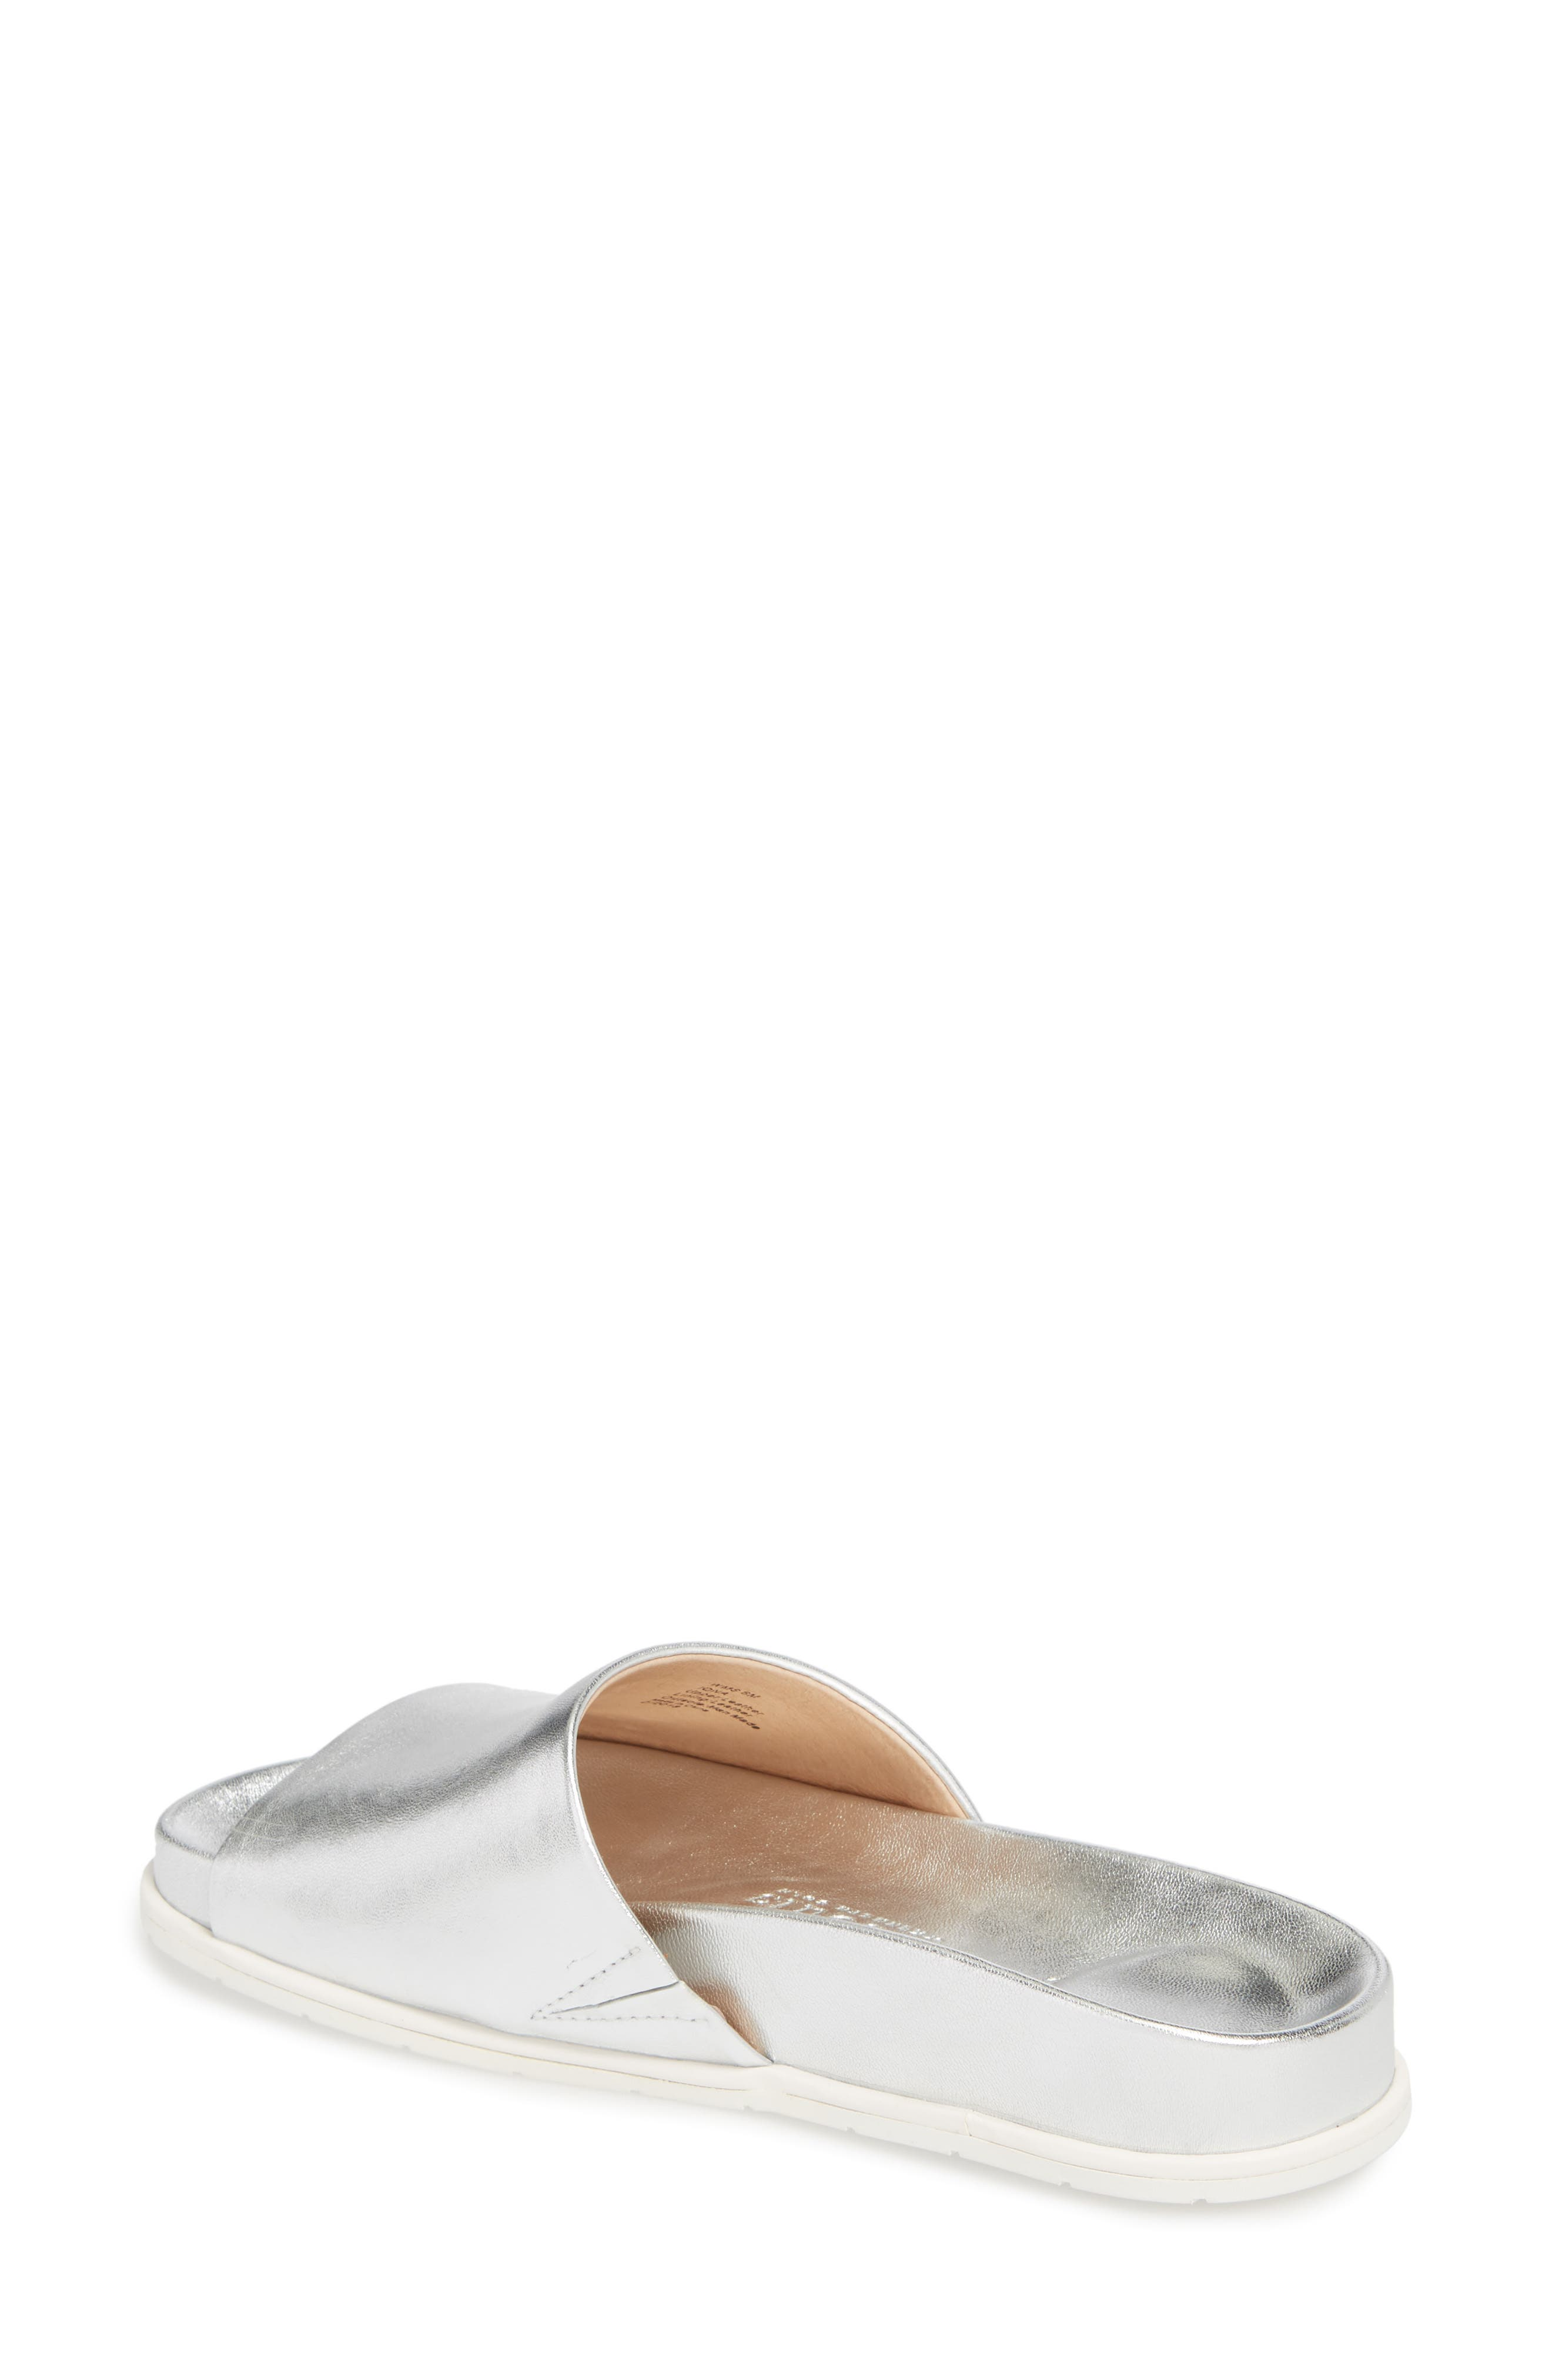 GENTLE SOULS BY KENNETH COLE, Iona Slide Sandal, Alternate thumbnail 2, color, SILVER METALLIC LEATHER